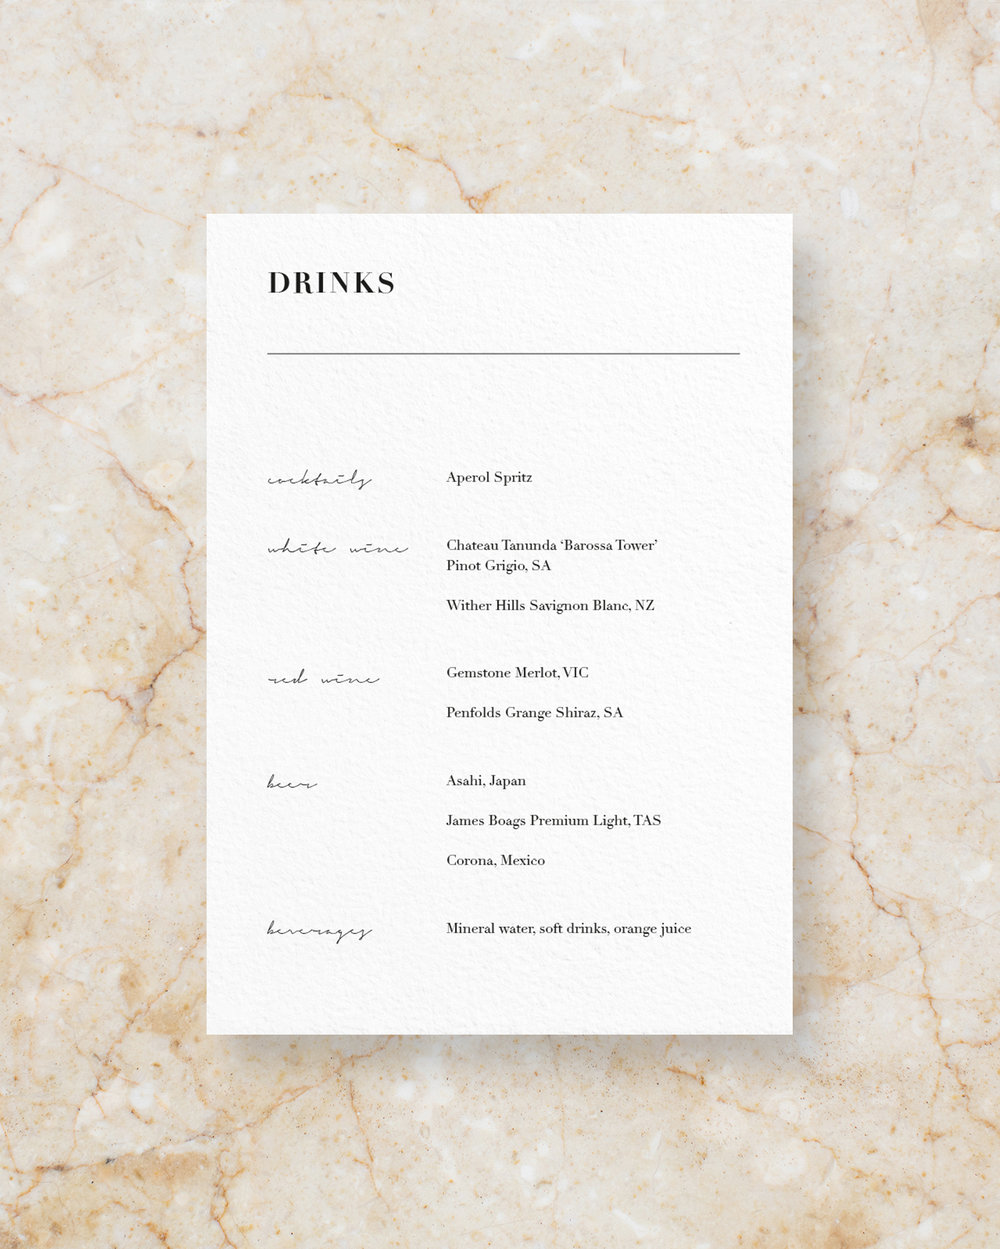 Drinks Menu I